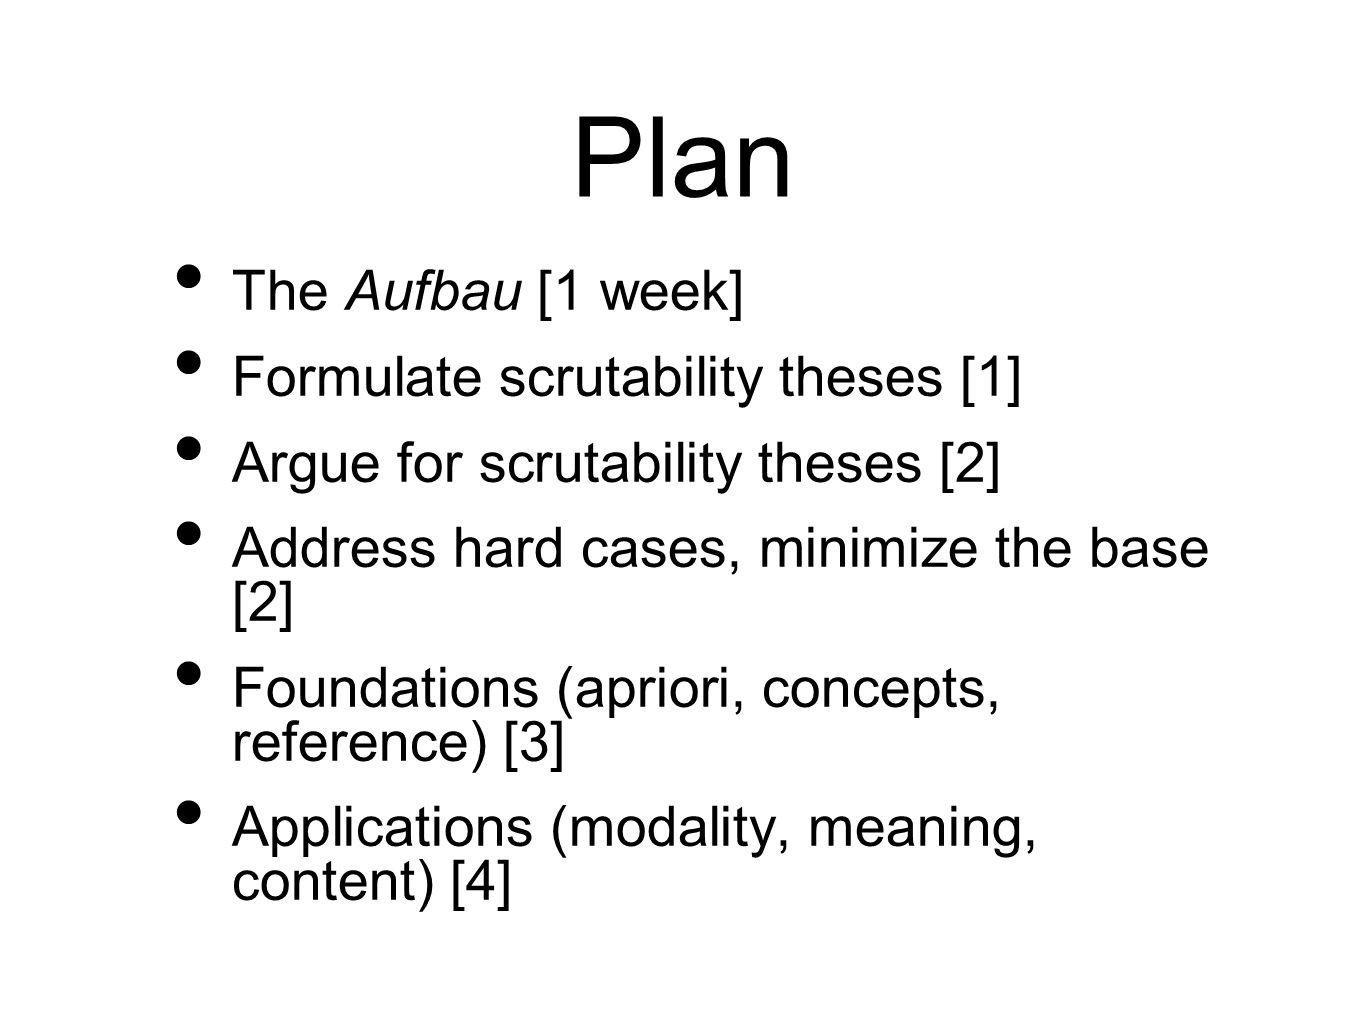 Plan The Aufbau [1 week] Formulate scrutability theses [1] Argue for scrutability theses [2] Address hard cases, minimize the base [2] Foundations (ap